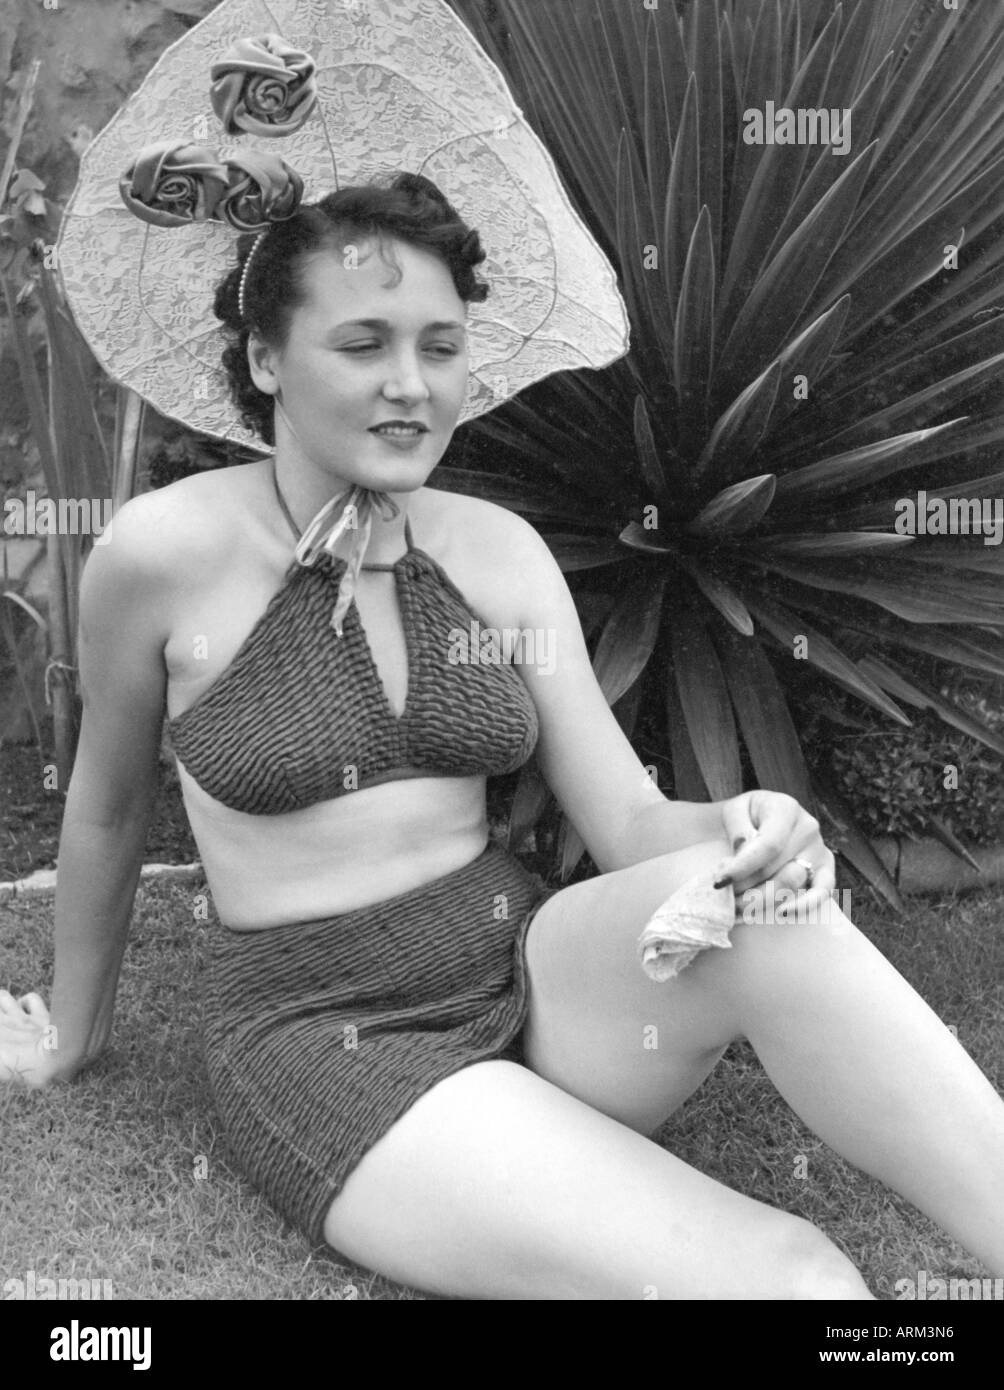 VRB101289 British woman in bikini sitting on the ground portrait in studio Kulri Mussorie Uttar Pradesh India 1940 s - Stock Image